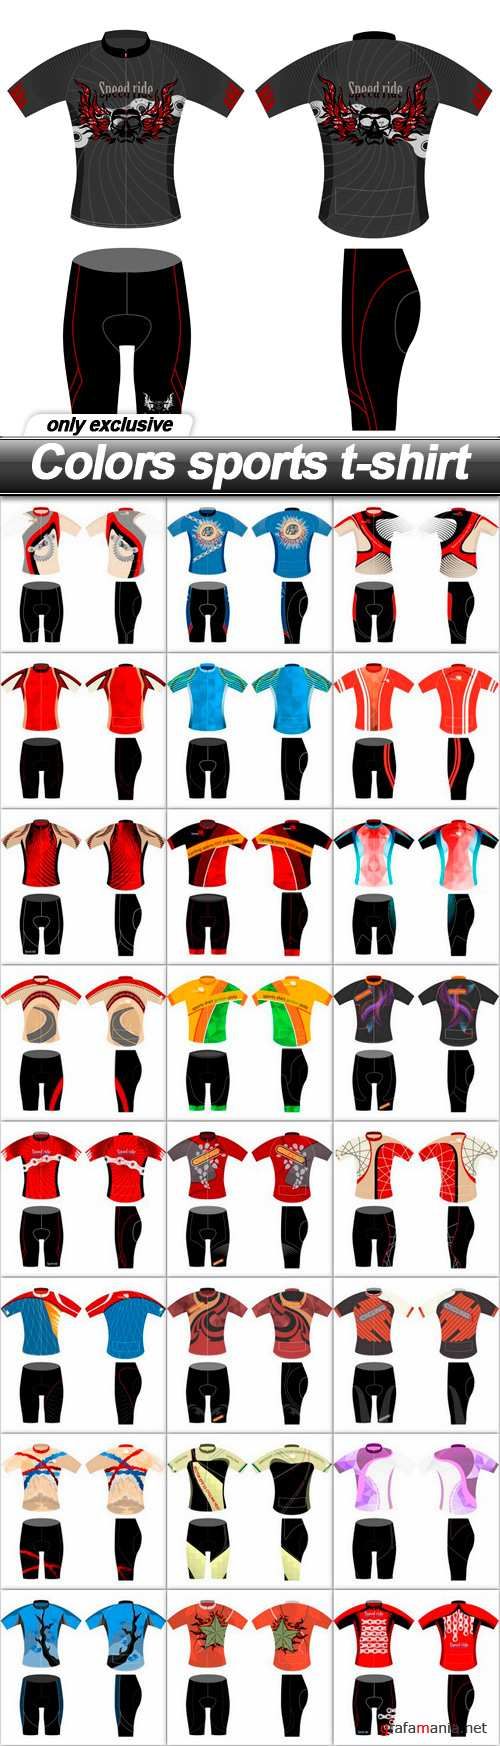 Colors sports t-shirt - 25 EPS